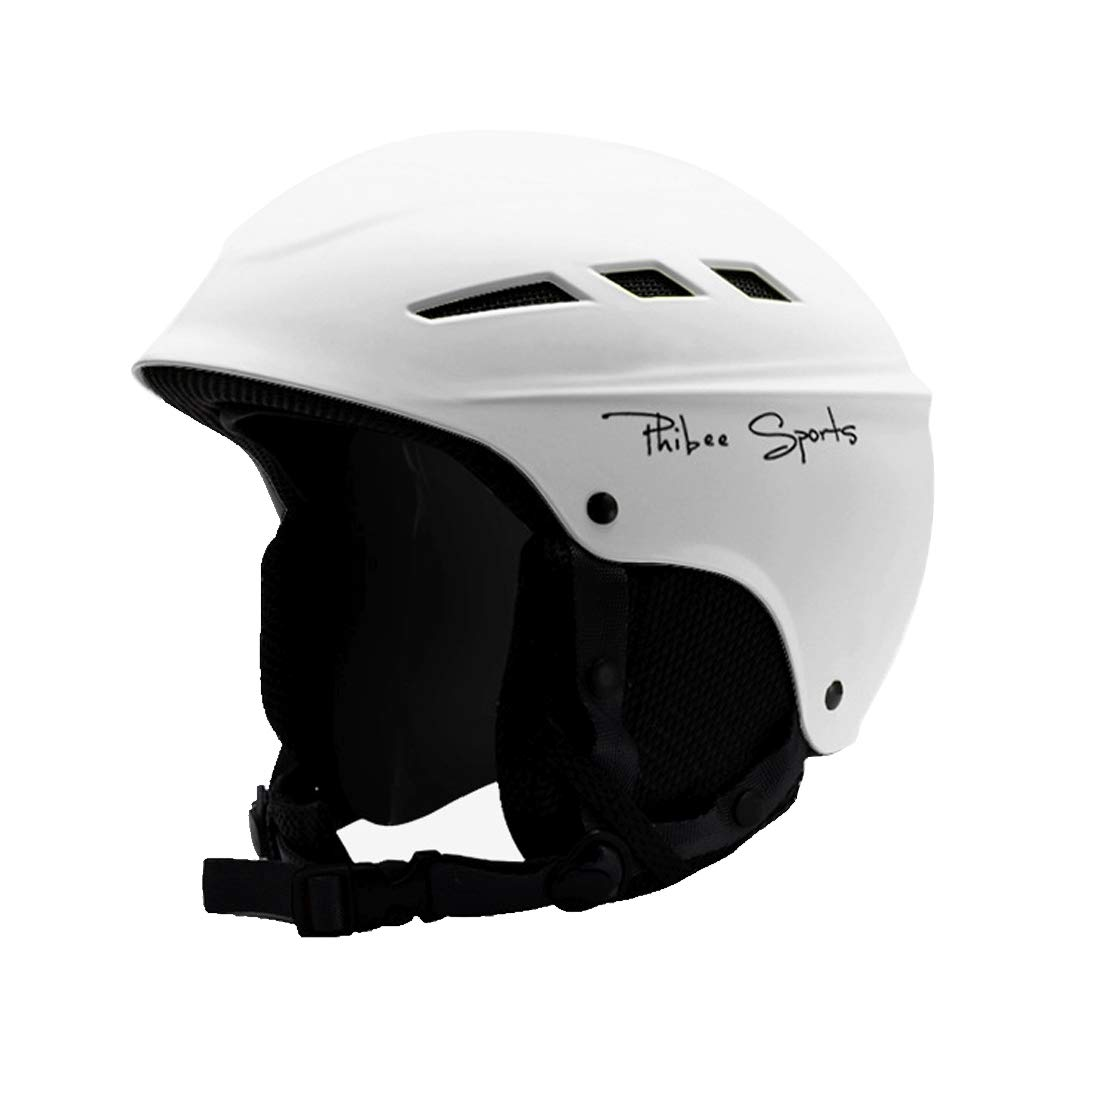 VAXT Fit for 50-56cm, Sizing: S, Individual and Dual Plate Skiing Professional Protective Helmet 8 Air Vents PC Shell Adjustable Buckle Parent-Child Protective Helmet (Color : Cms5504b)